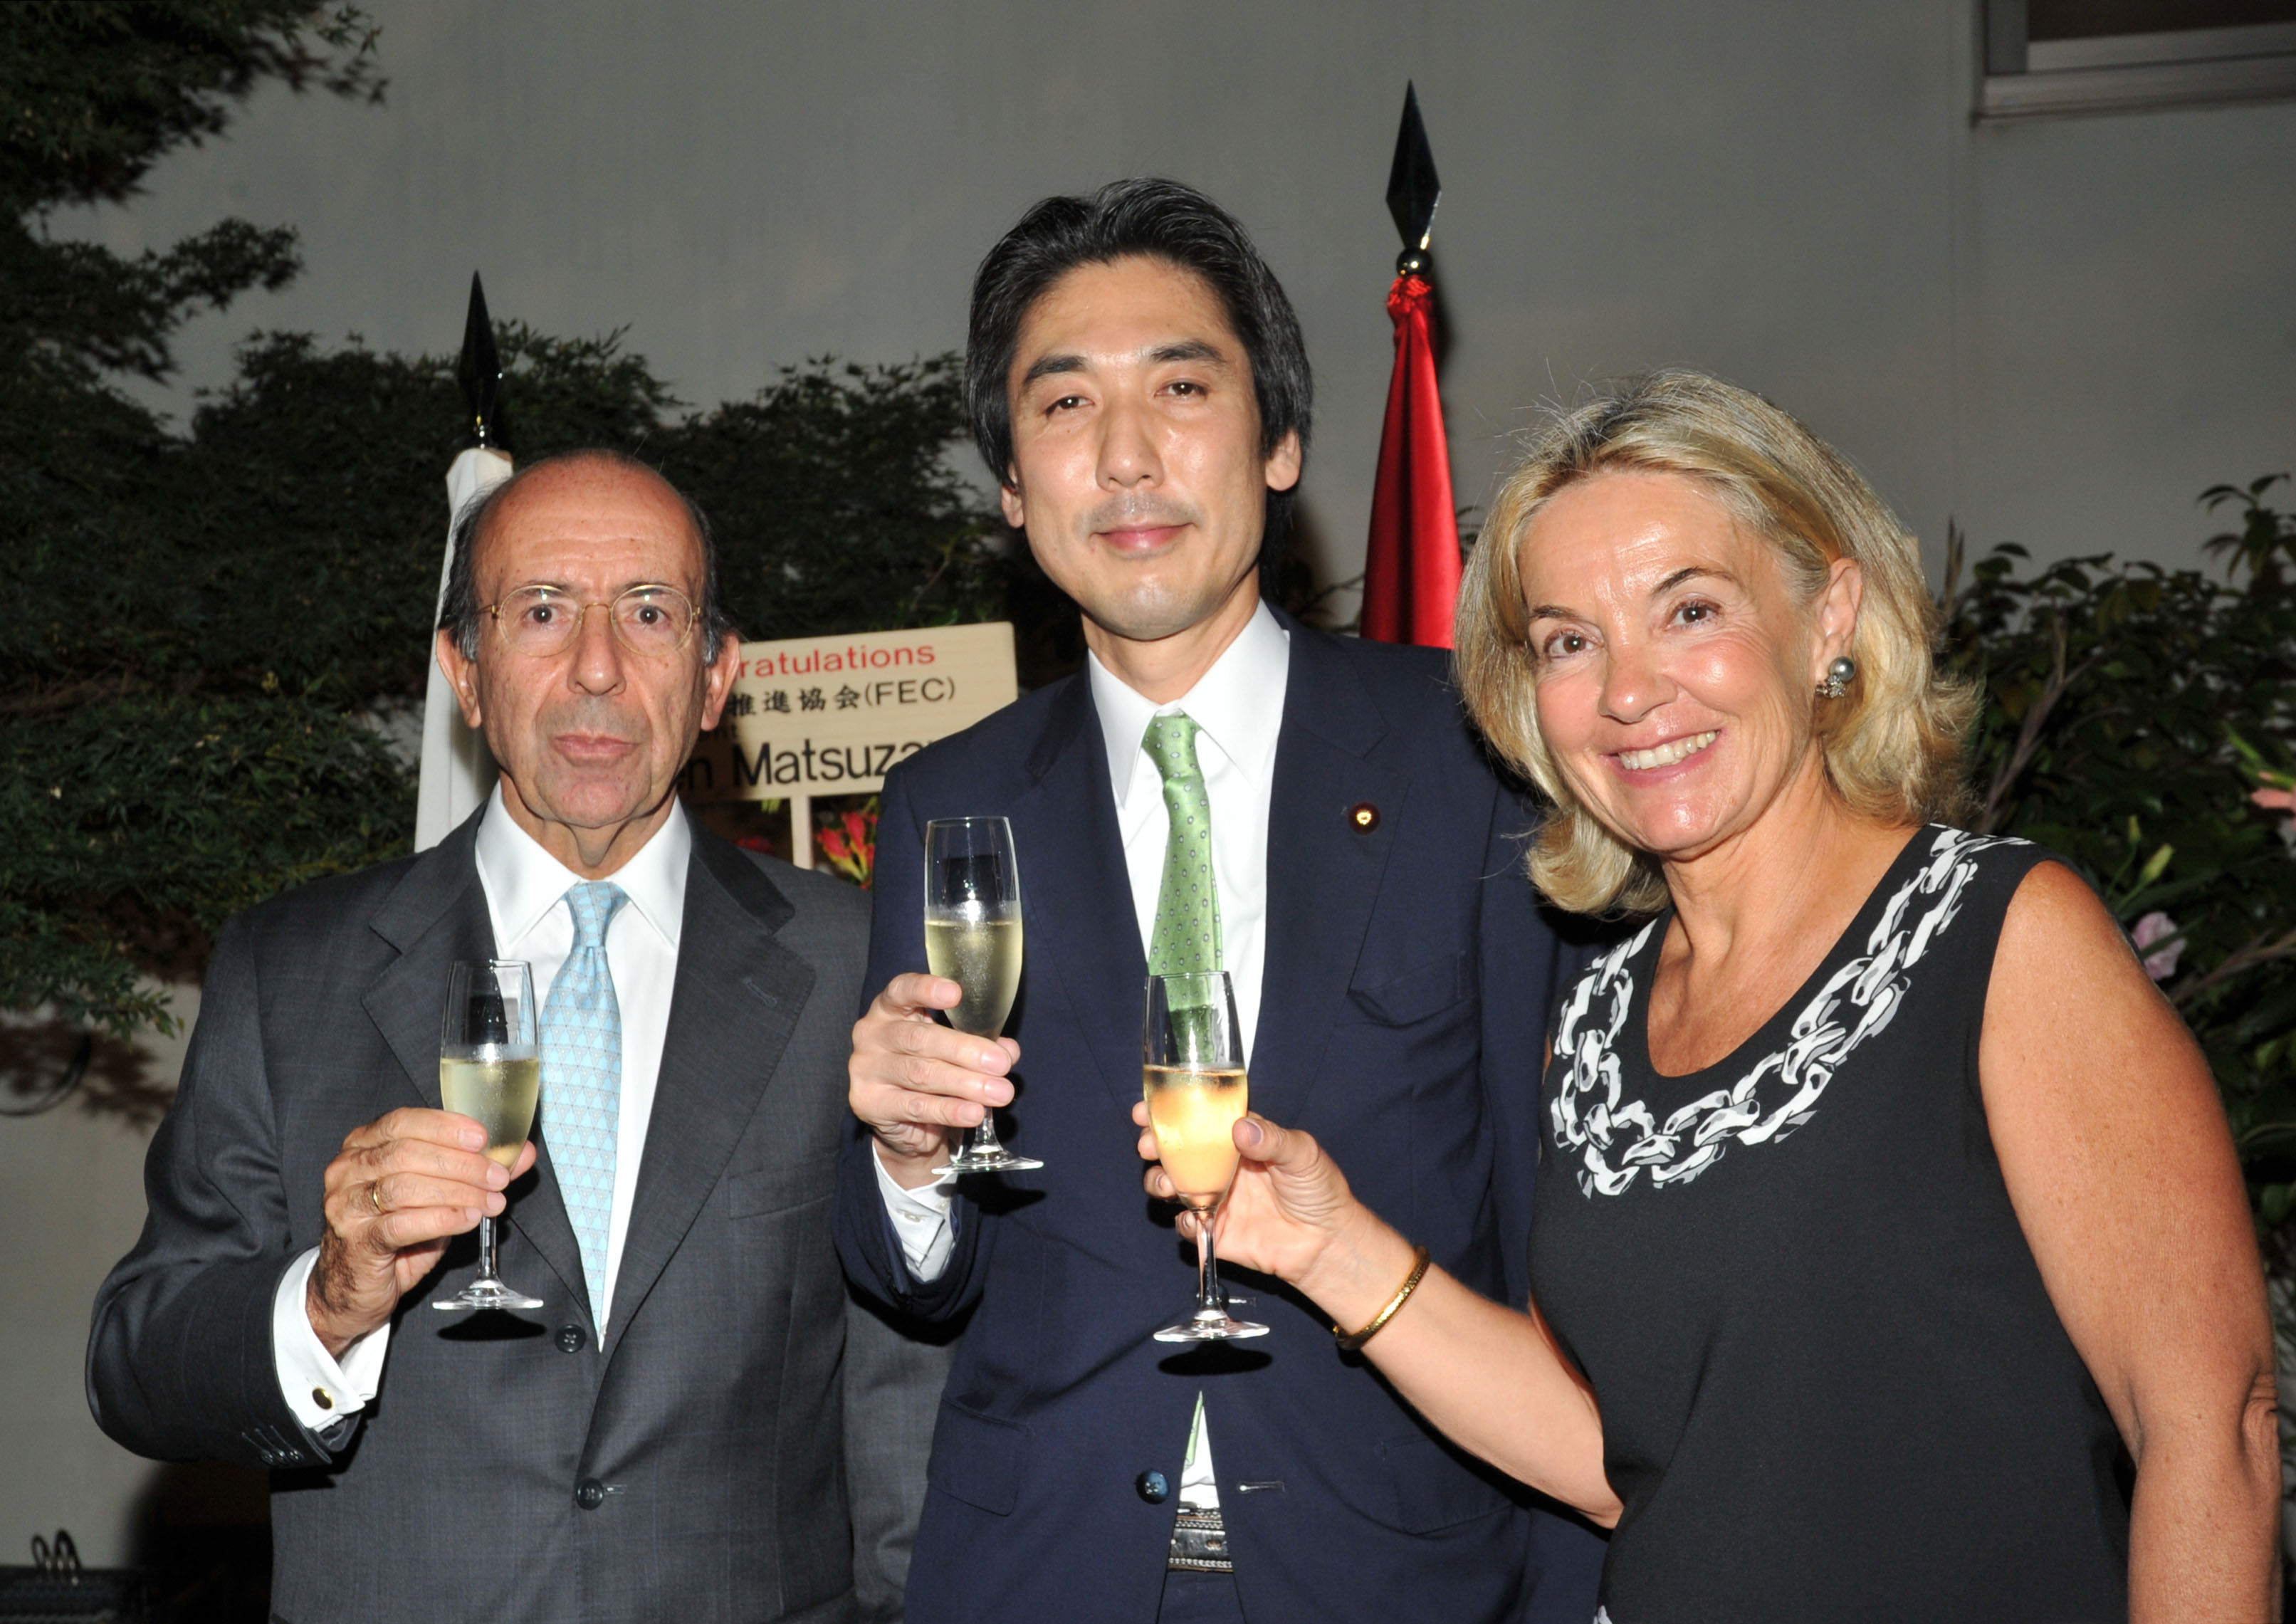 Spanish Ambassador Gonzalo de Benito (left) and his wife, Esther  share a toast with former State Minister for Foreign Affairs Minoru Kiuchi, during a reception to celebrate the country's National Day at the embassy in Tokyo on Oct. 15. | YOSHIAKI MIURA